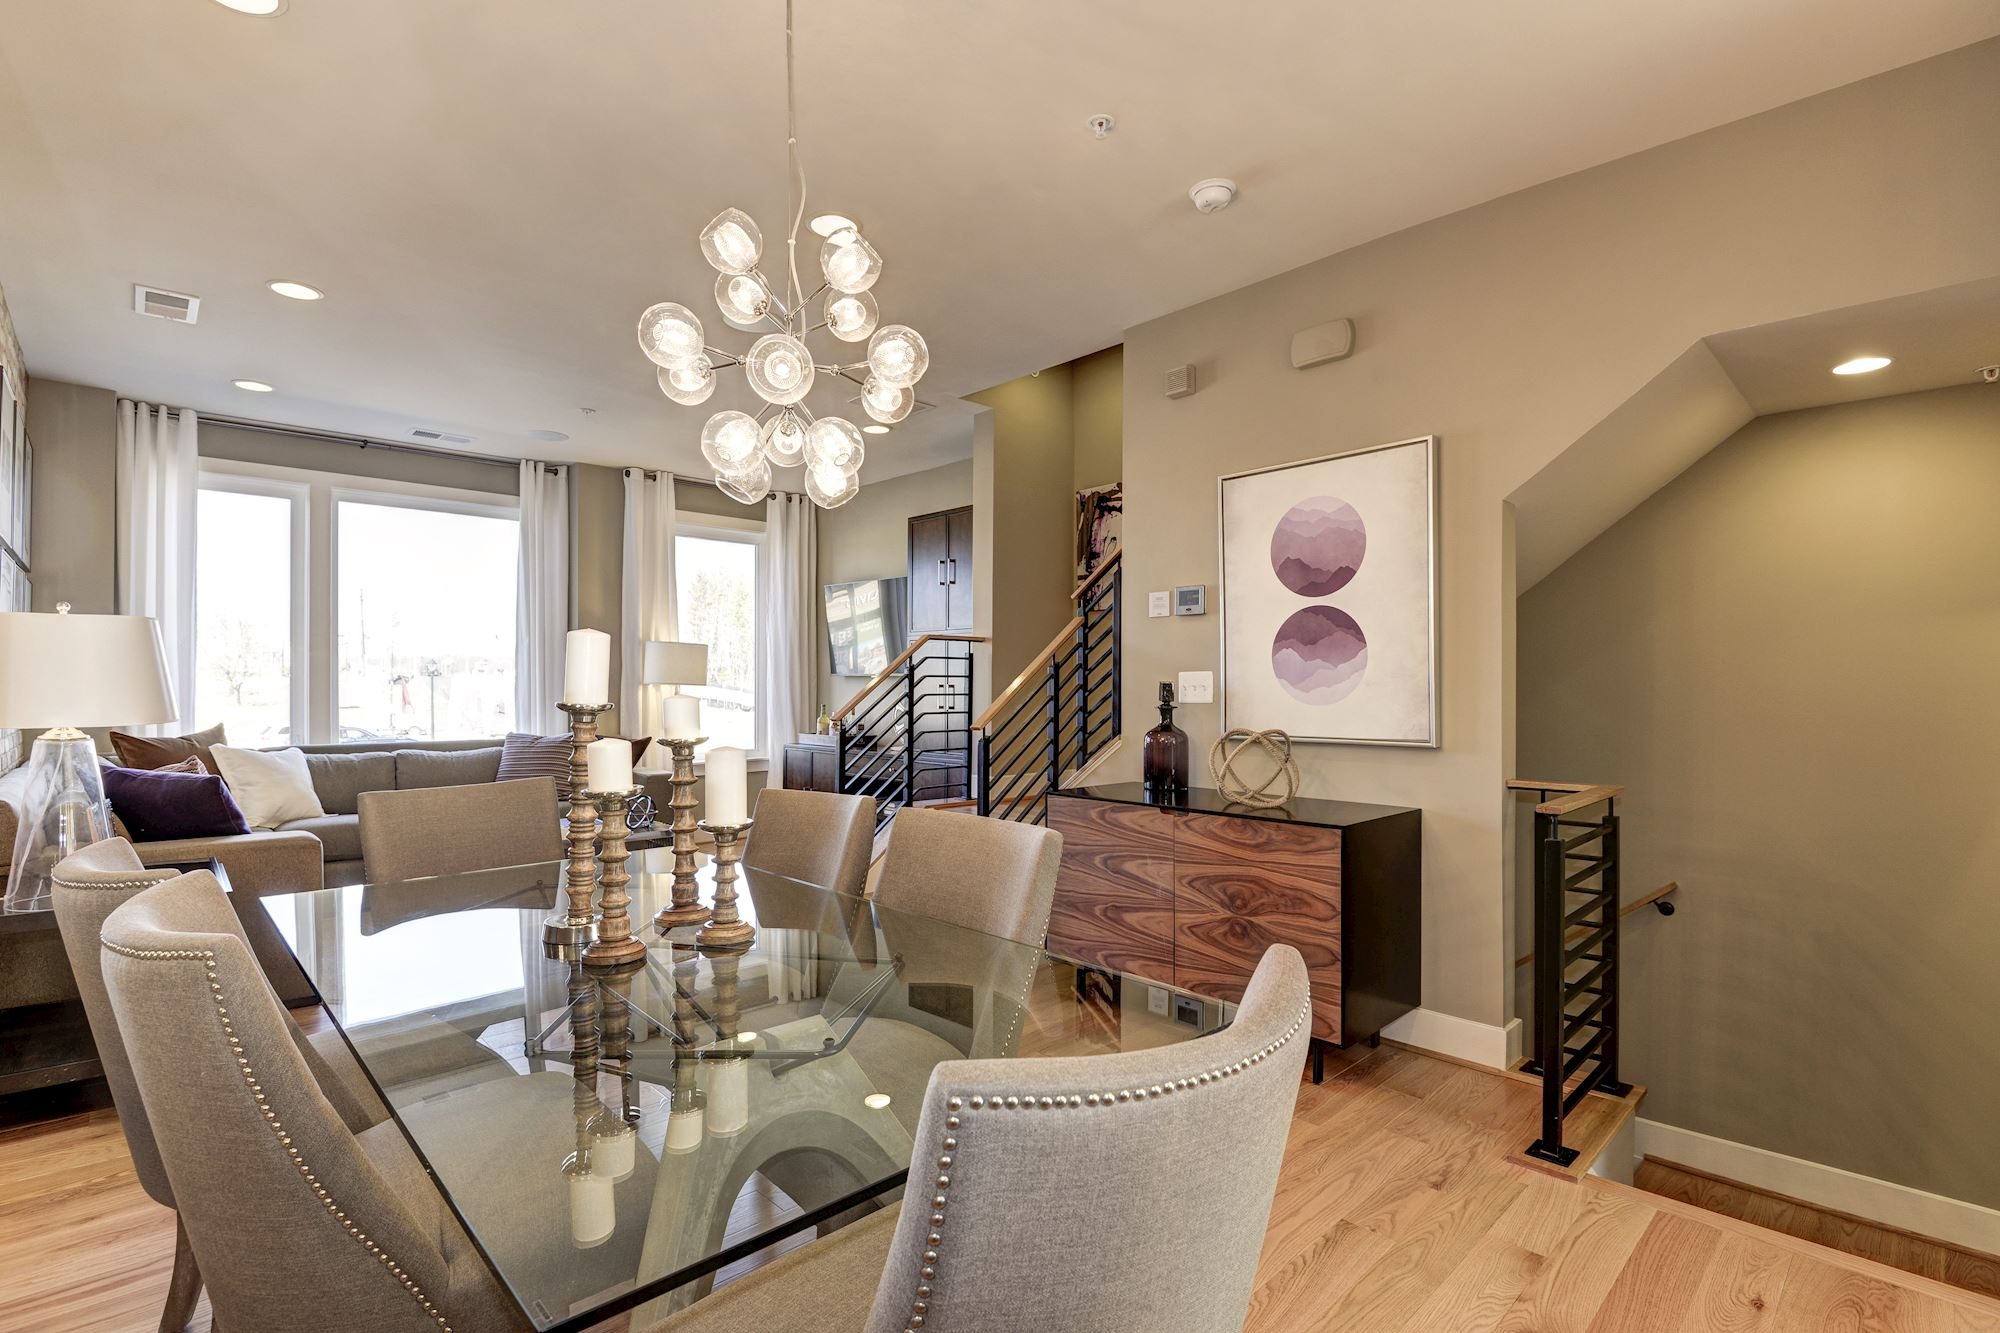 Additional photo for property listing at Westside At Shady Grove Metro-The Bancroft 16658 Crabbs Branch Way Rockville, Maryland 20855 United States